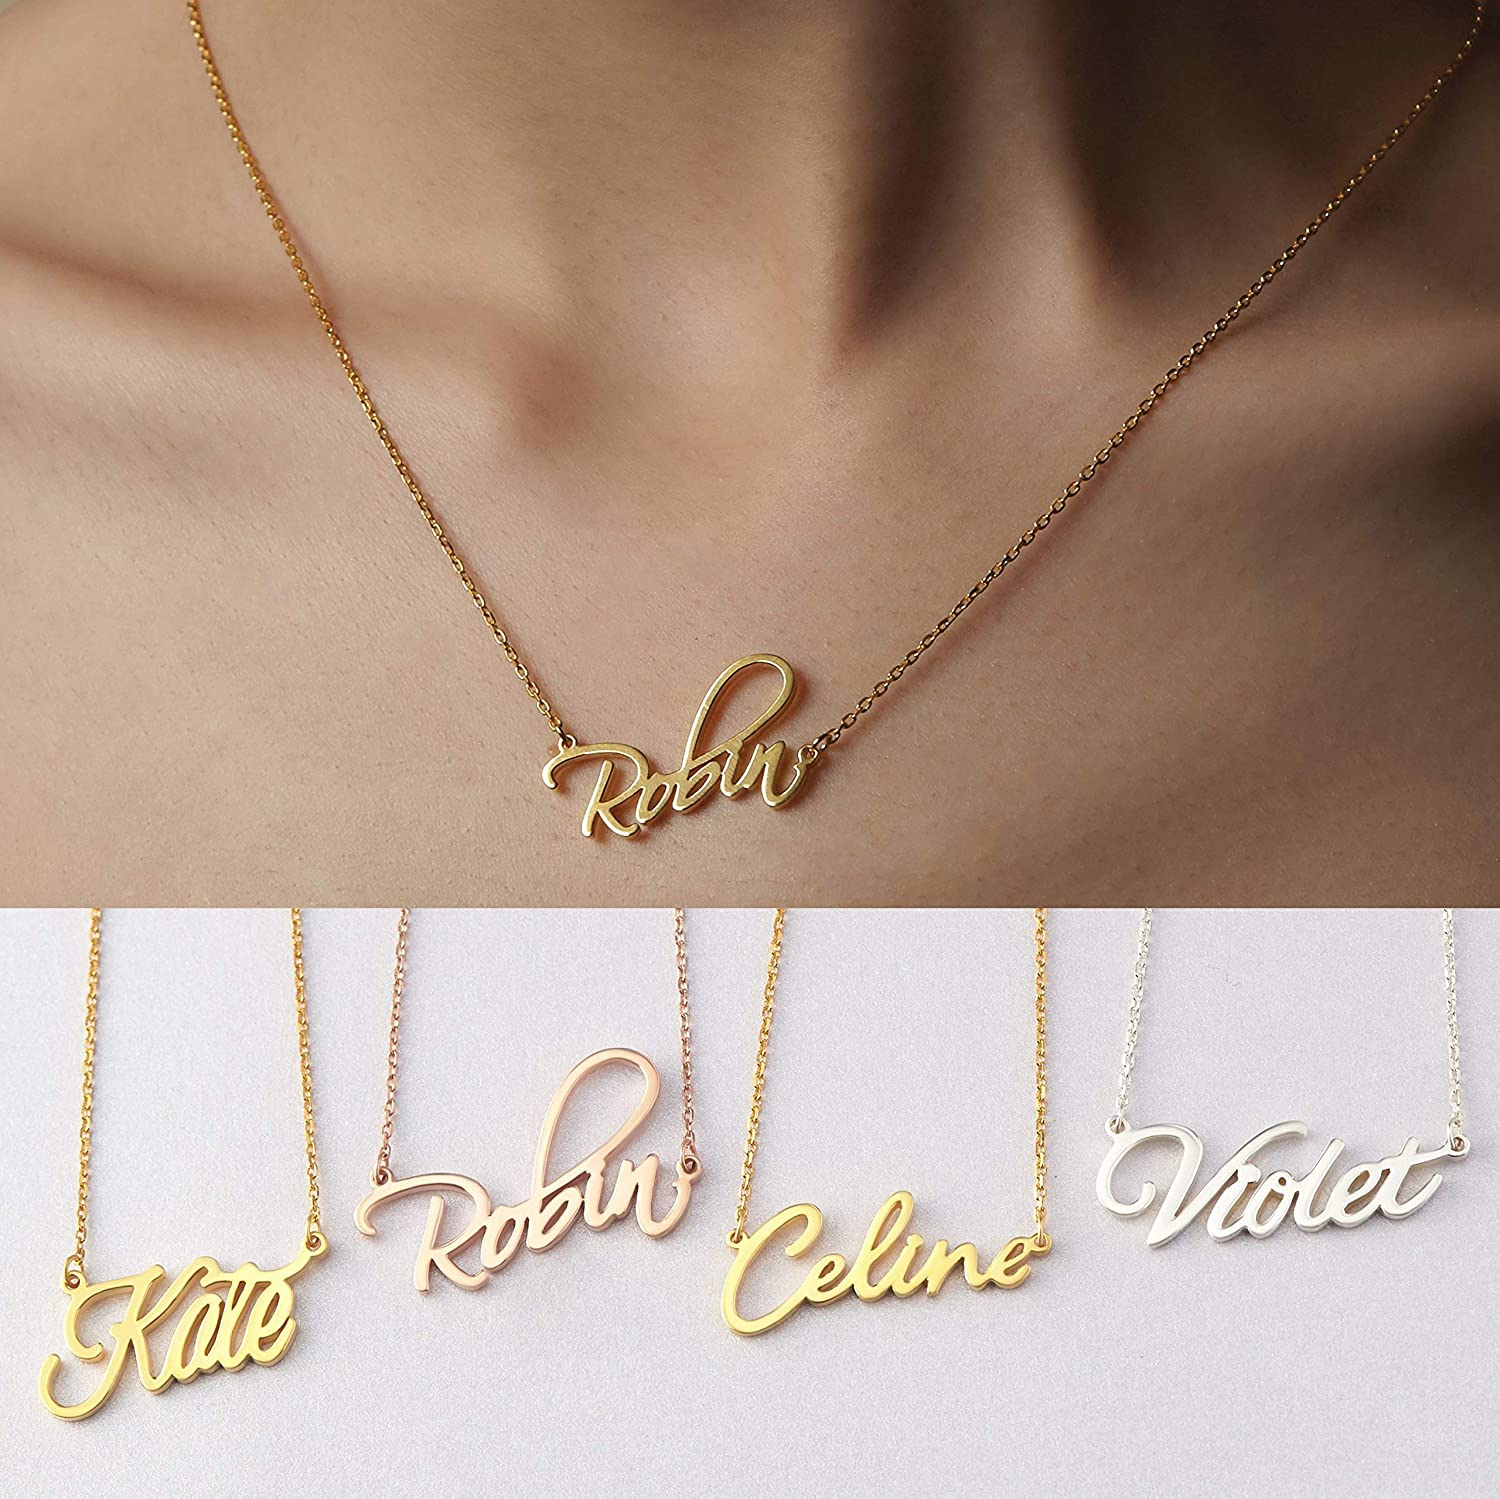 Name Necklace Personalized, Custom Name Pendant Christmas Jewelry Gift for  Girls